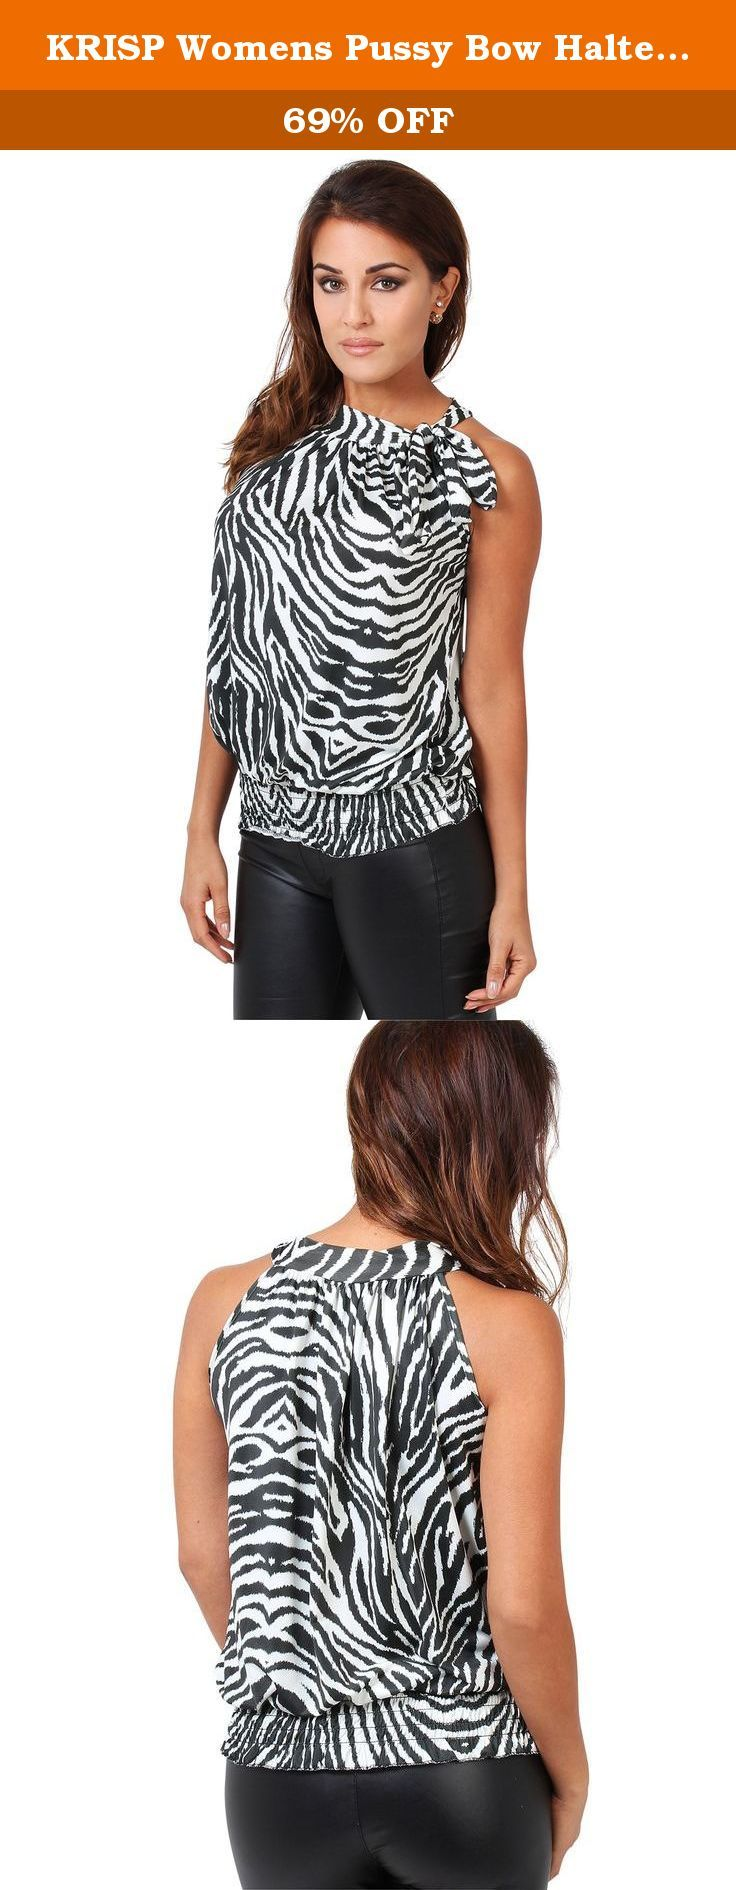 "KRISP Womens Pussy Bow Halter Neck Top Blouse (7251-ZBR-10). Animal Print Halter Neck Blouse 7251 Wild animal patterns add spice to winter season. Cut from a slinky jersey and completed with an overall baggy look, this self tie halter neck top works both, day and evening look. Main Features: • Model wears US size 4/EU 36; Model's height 165cm/5'5"" • Length from shoulder 23""/58.5cm • SizeSizes have already been converted from UK to US (e.g. UK 8 - US 4) Please choose your US size from the..."